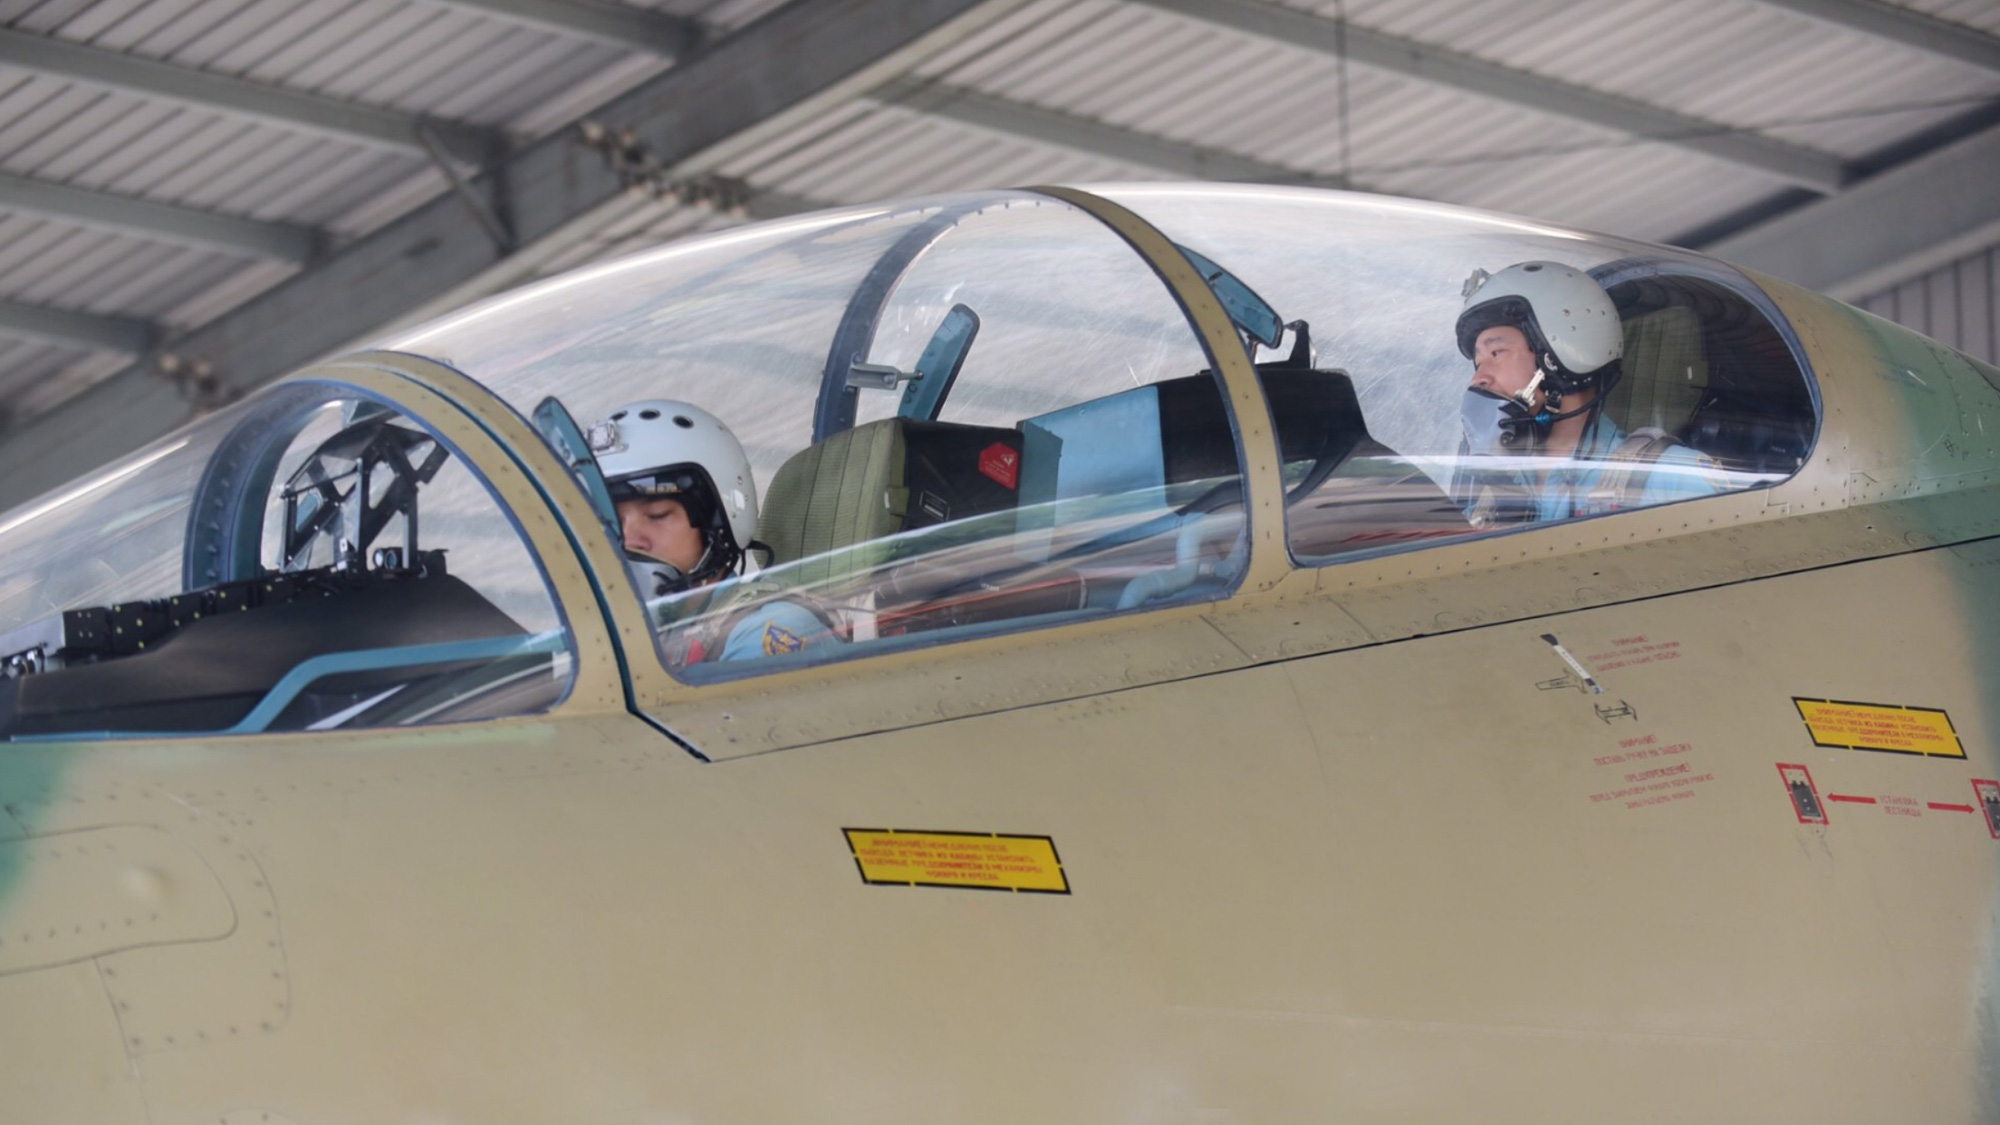 Vietnamese fighter jet pilot Nguyen Quang Sang (right) prepares to fly a Su-30MK2 aircraft in this provided photo.